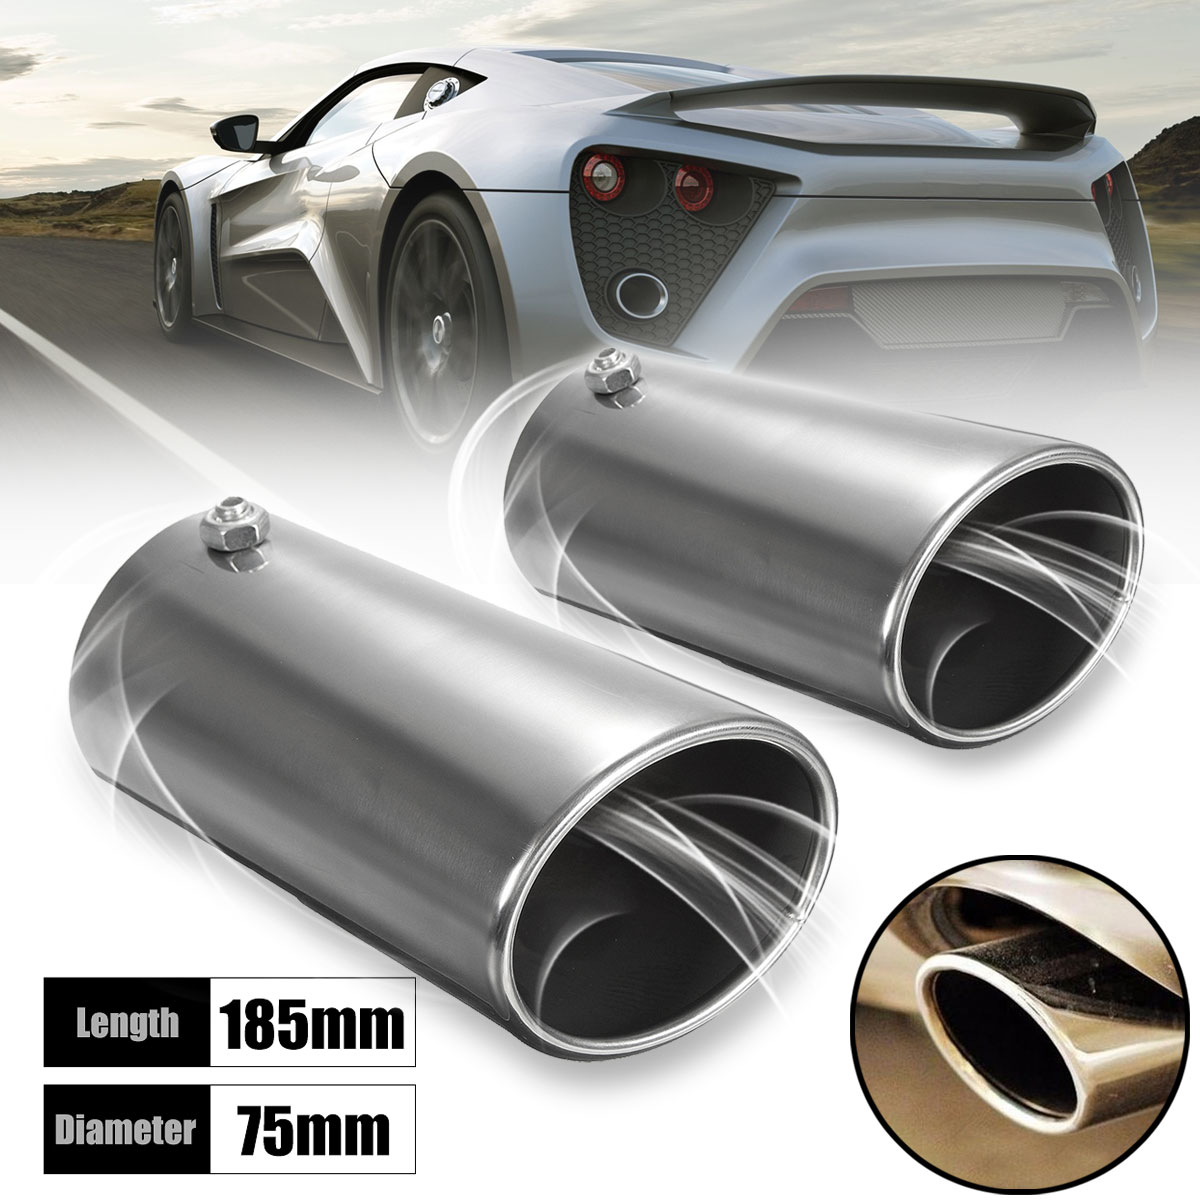 1.5-38mm Curl Down Exhaust Tail Pipe Bolt On Curve Downwards Tip Stainless Steel Trim Mufflers Rear Back Box